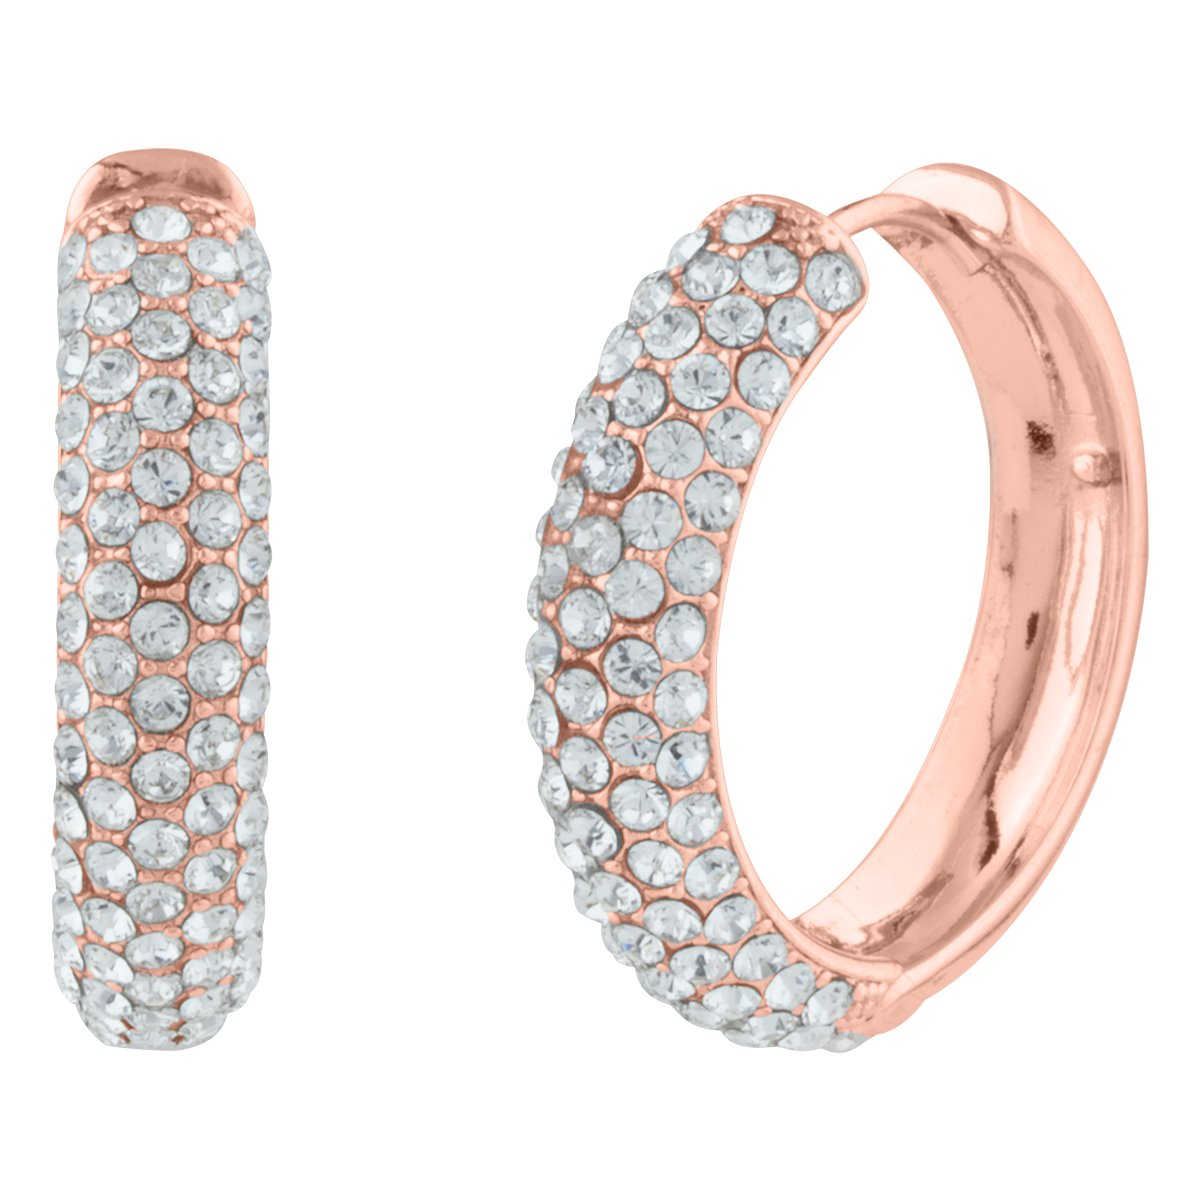 KELLY PAVE HOOP EARRING ROSE GOLD CRYSTAL